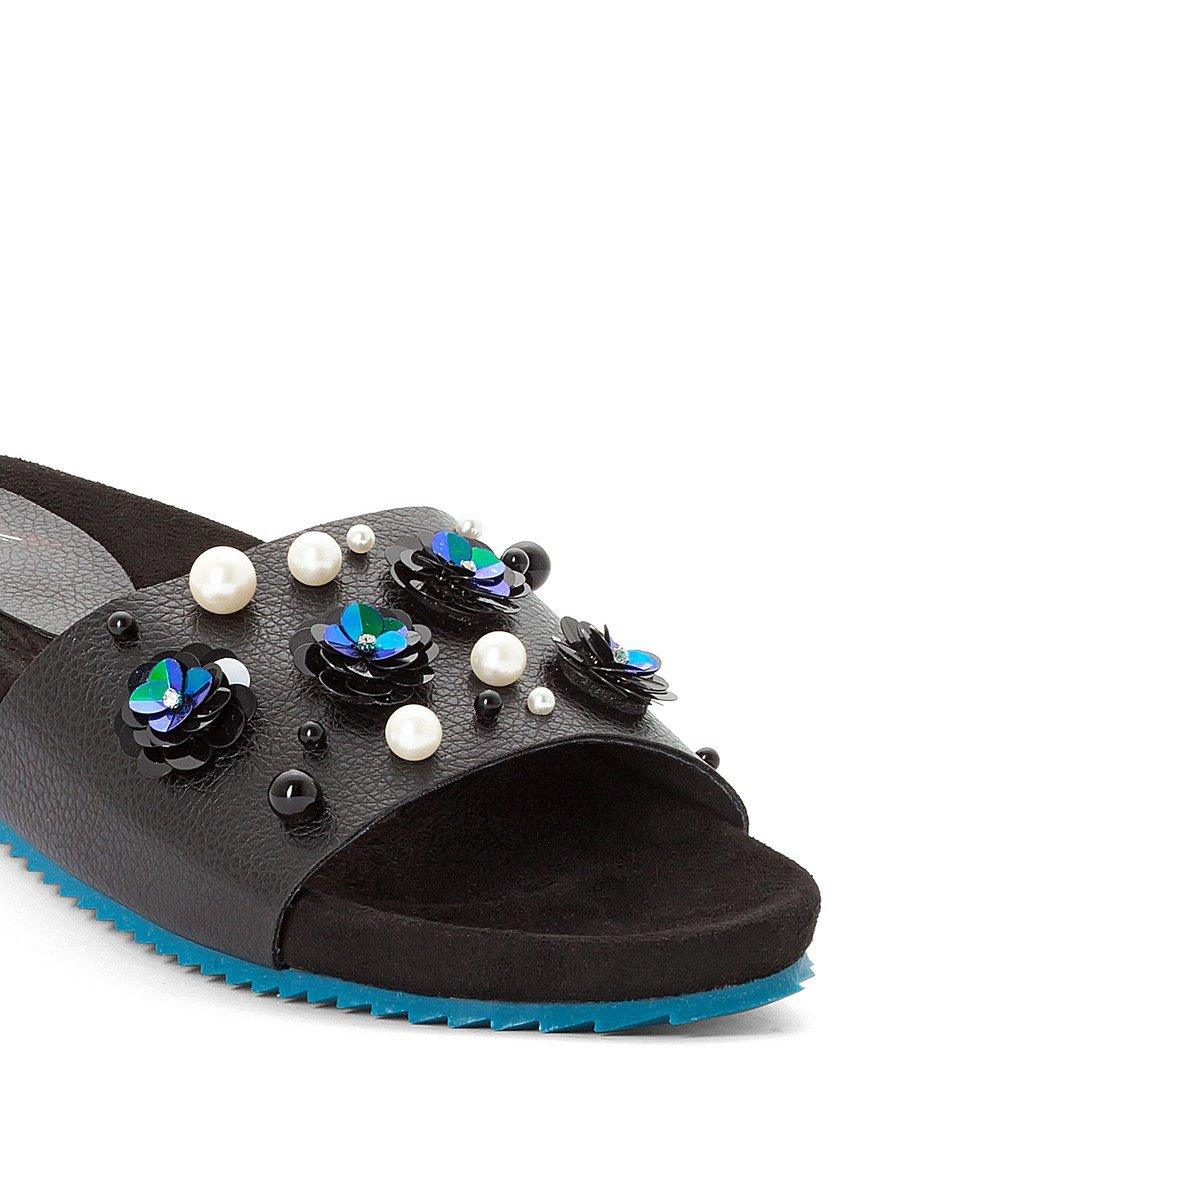 5.5 To 6 La Redoute Womens Embellished Mules Black Size 39 MADEMOISELLE R 5793275-000-1008610-00039-1